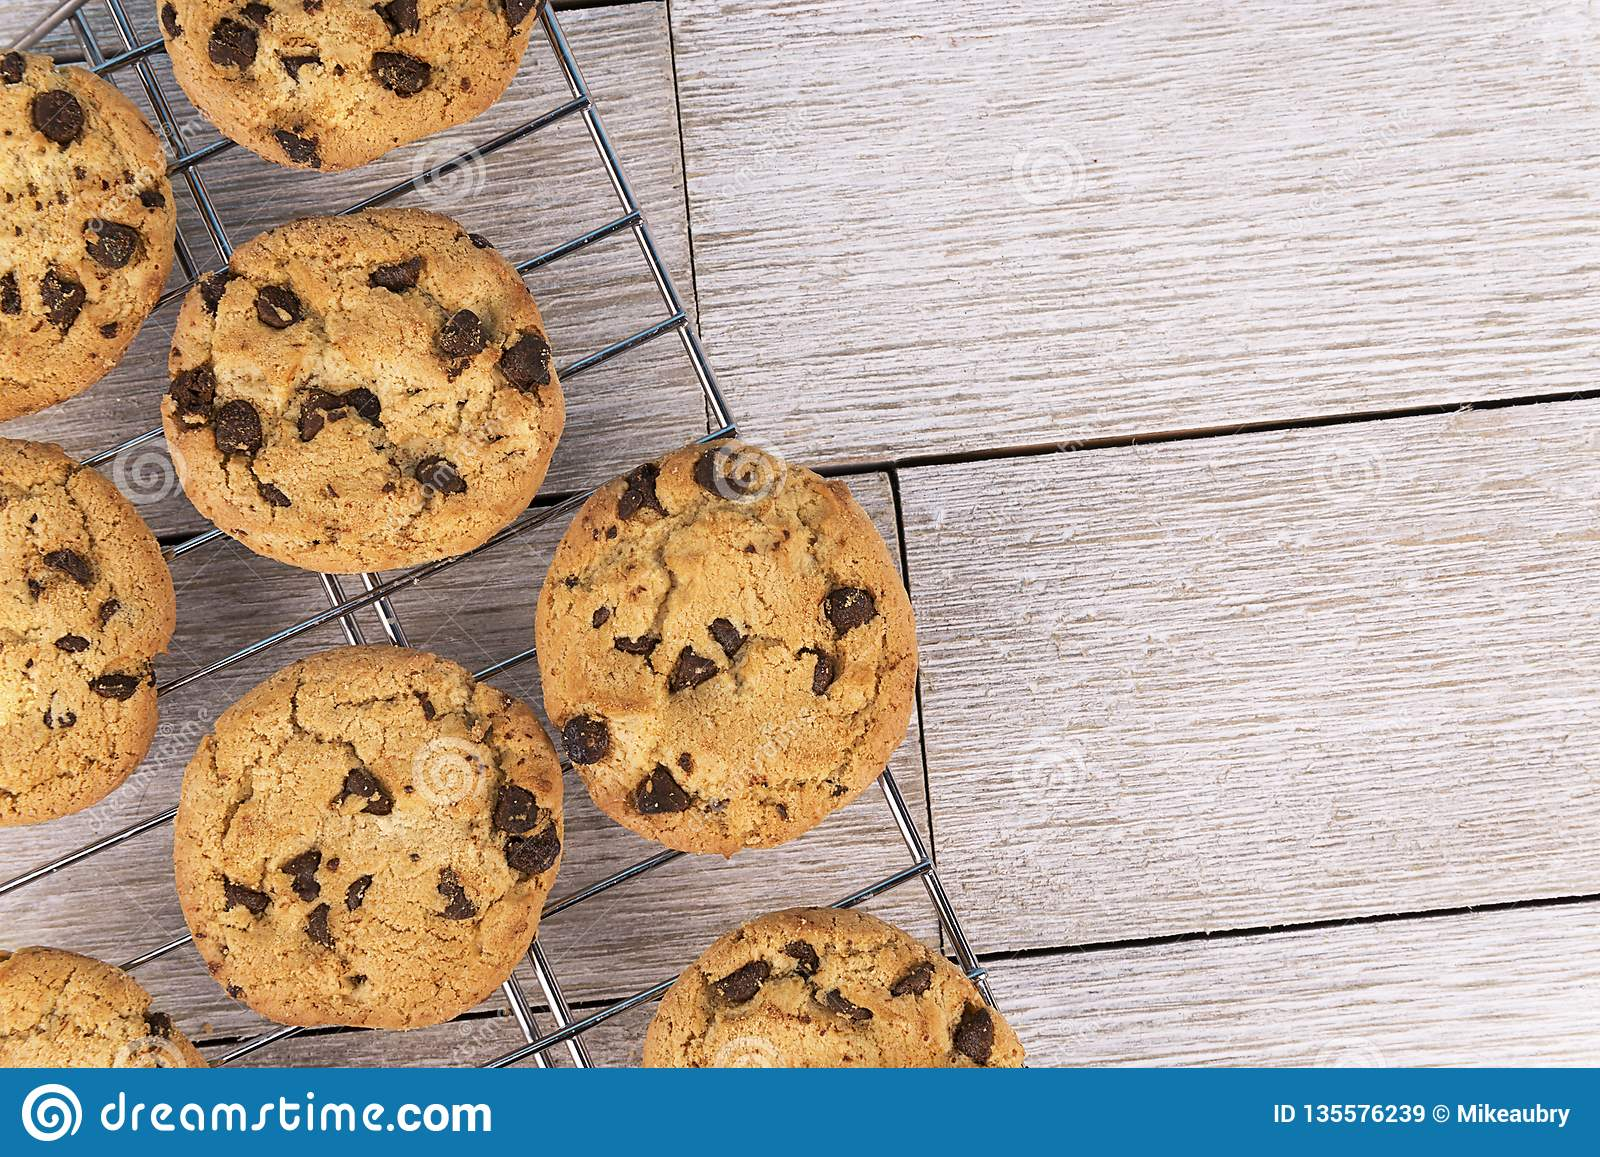 Top view of chocolate chip cookies on a cooling rack, white wooden plank in background.